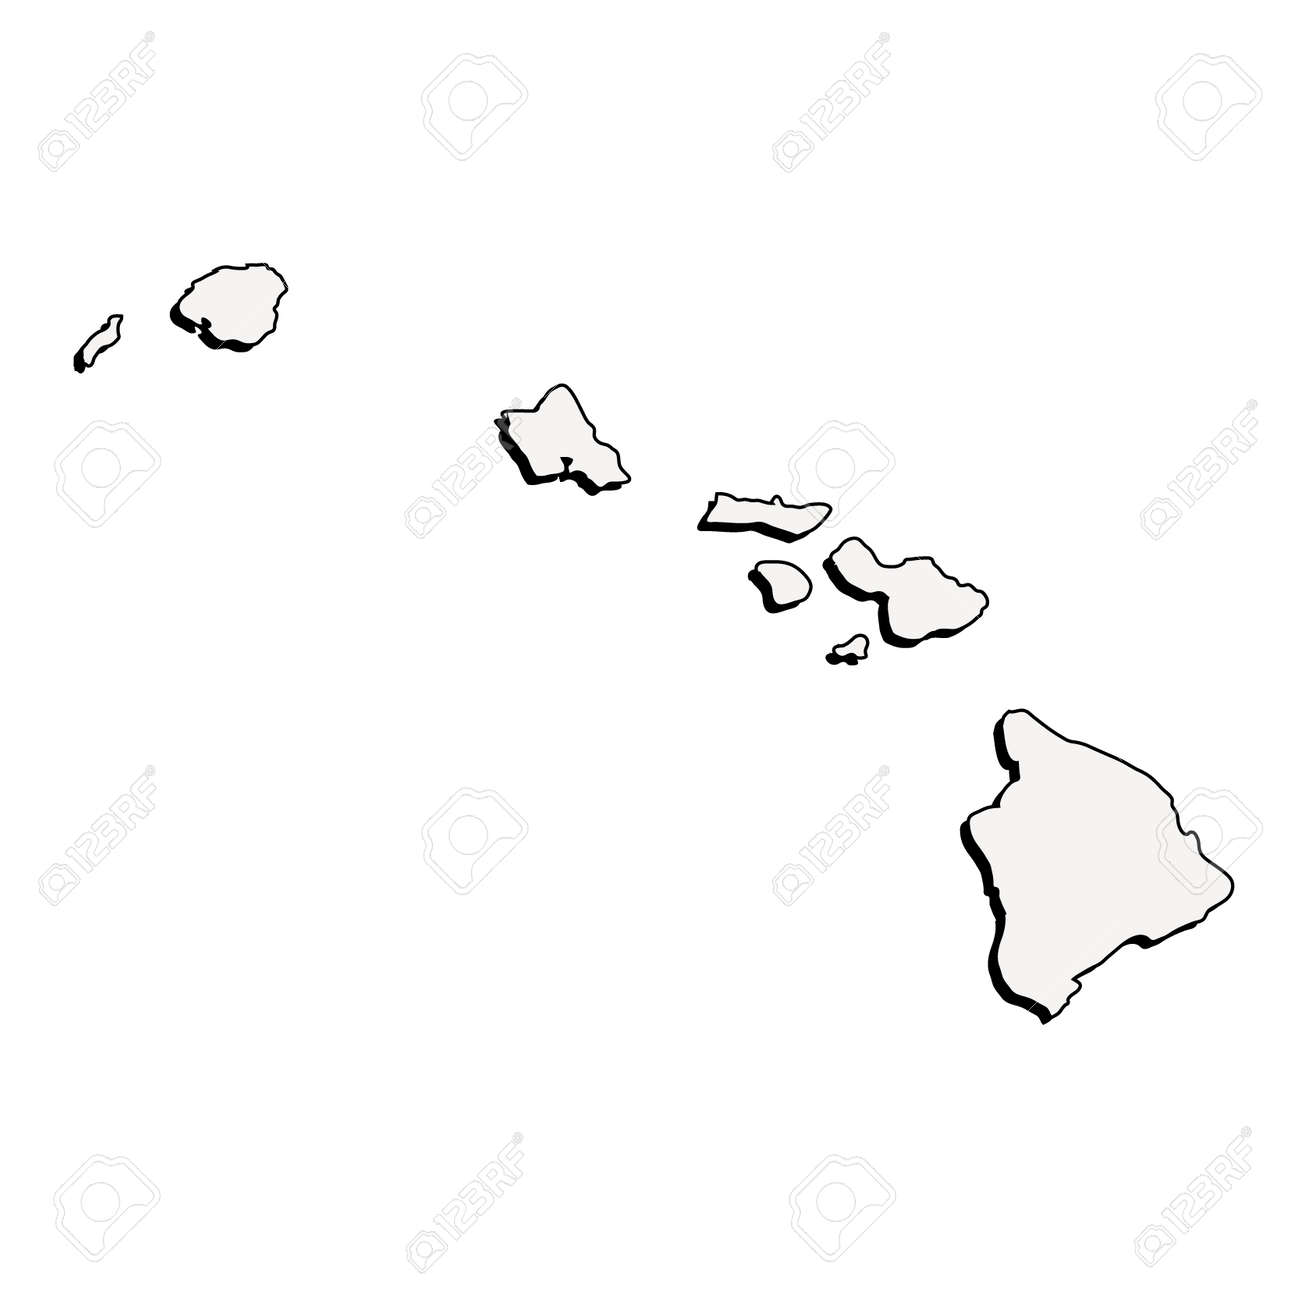 Hawaii (USA) detailed outline map with shadow